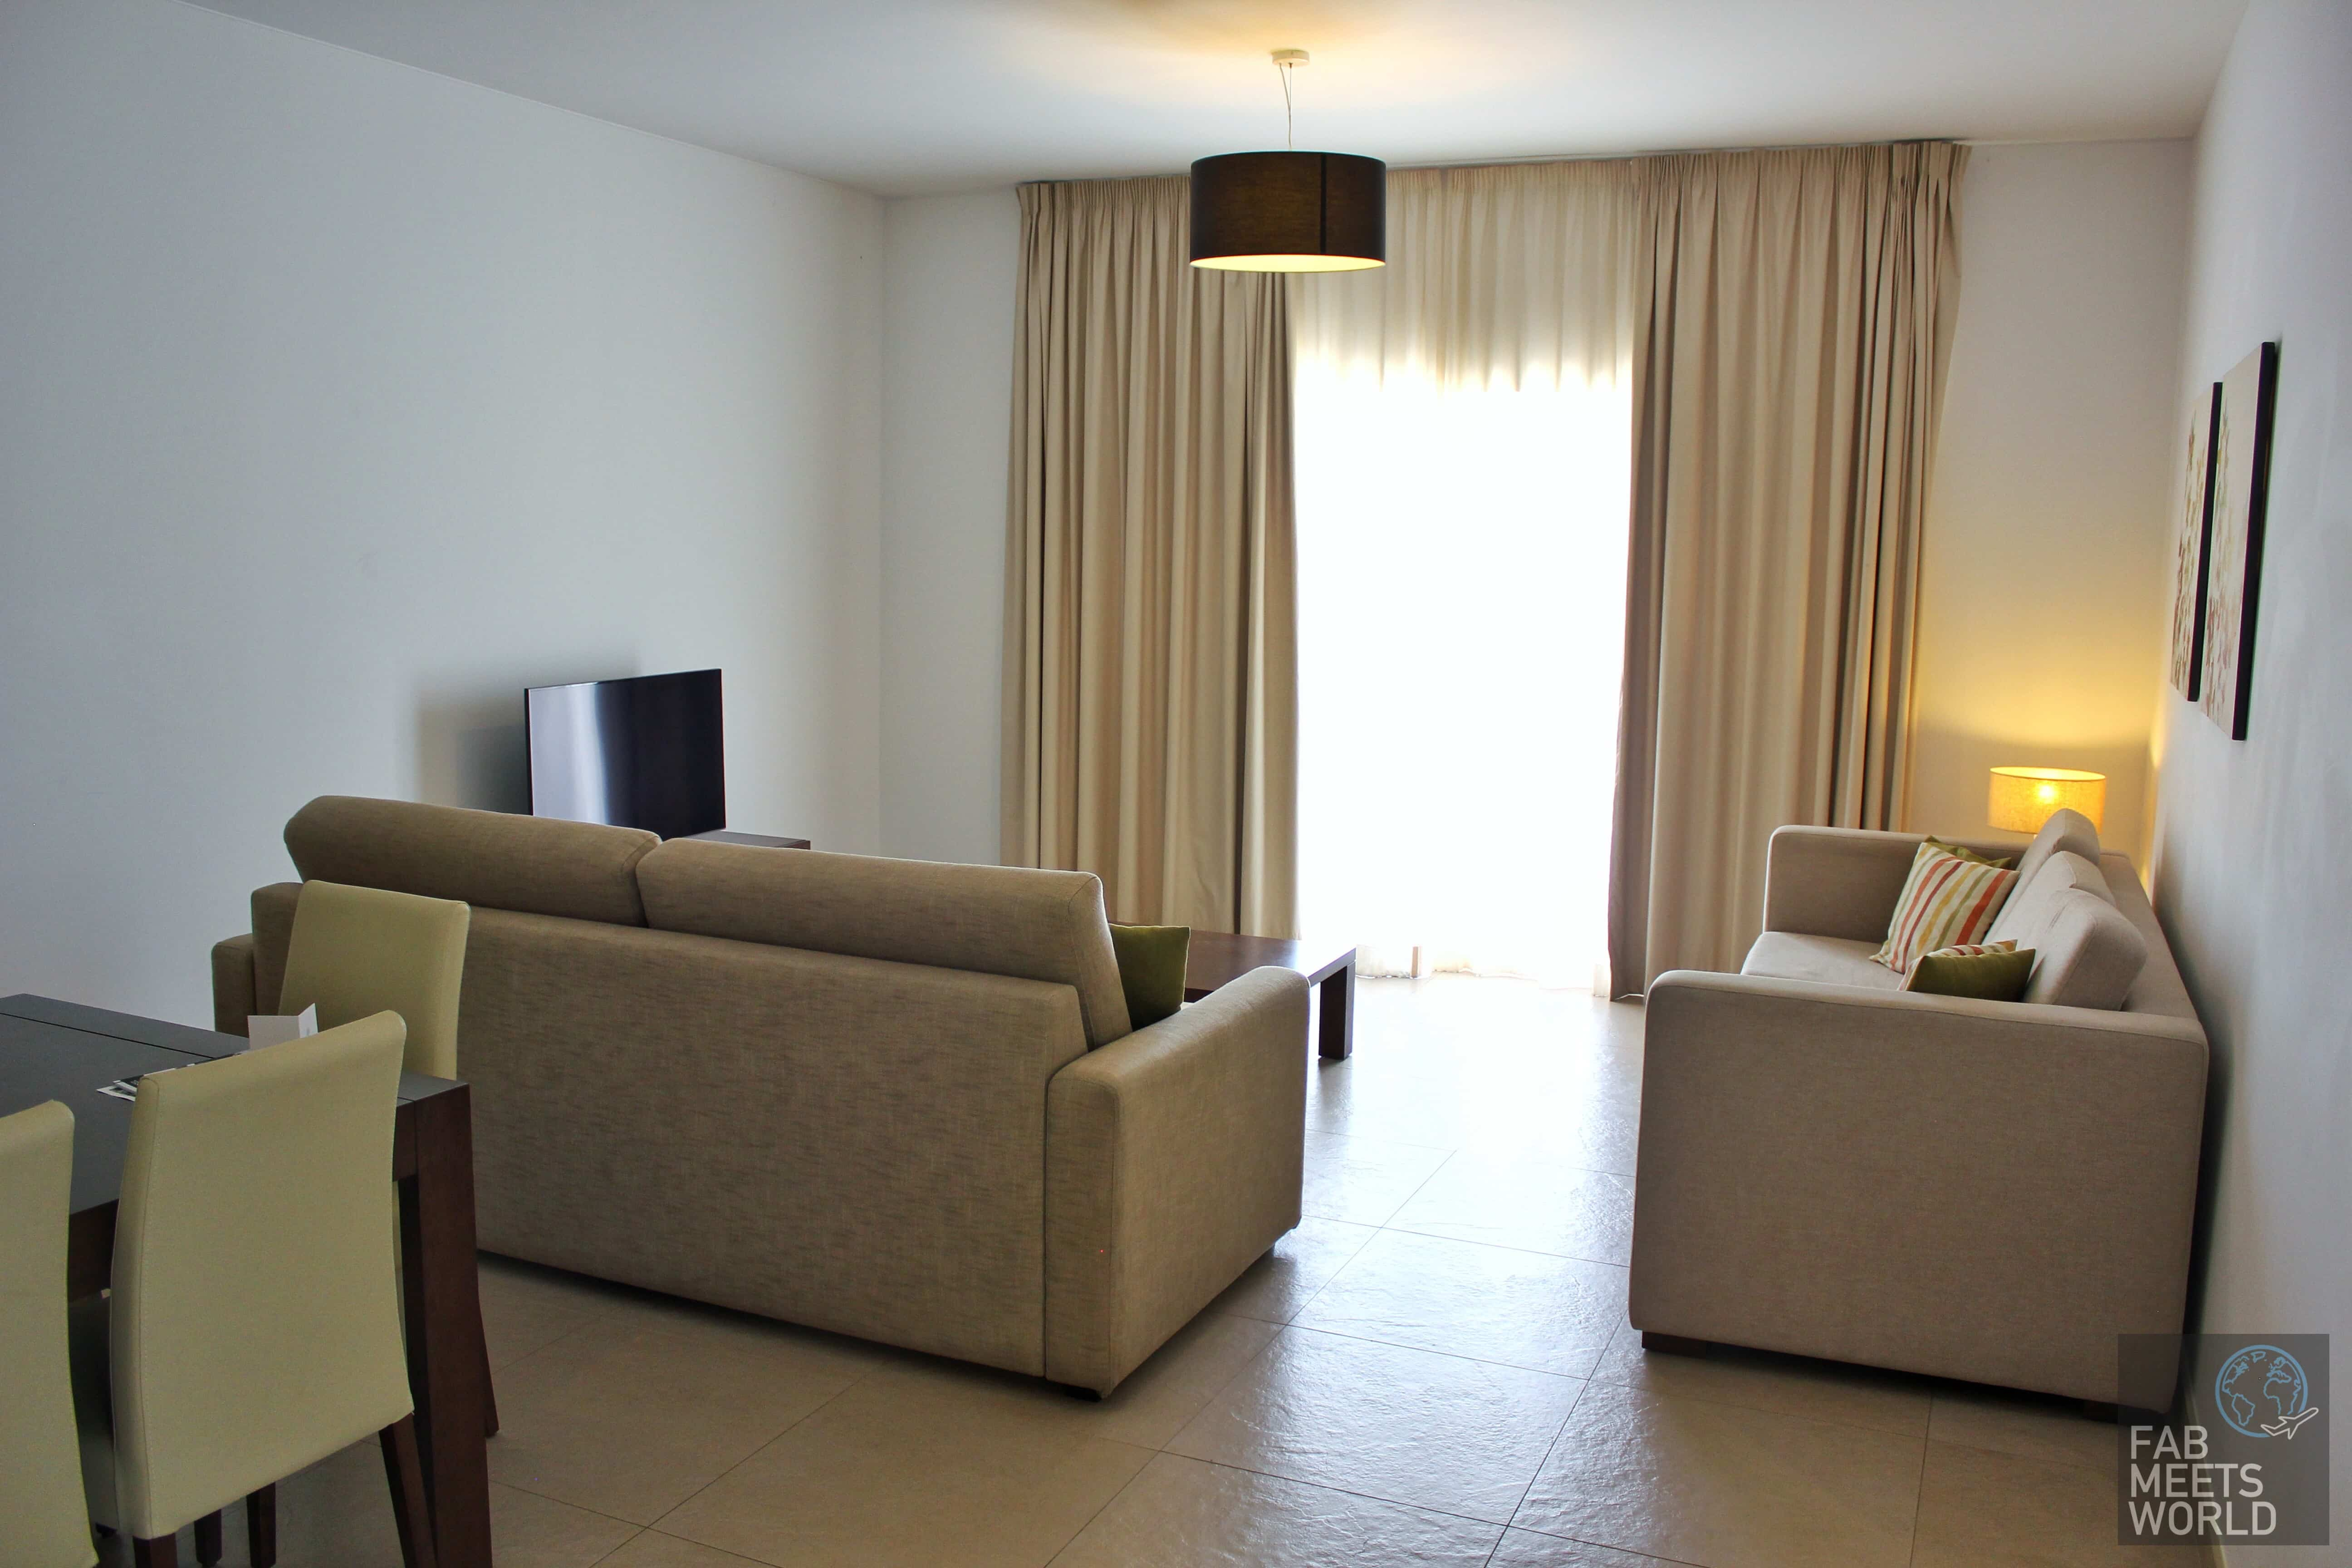 Eden Resorts Villas Are Very Spacious And Well Decorated